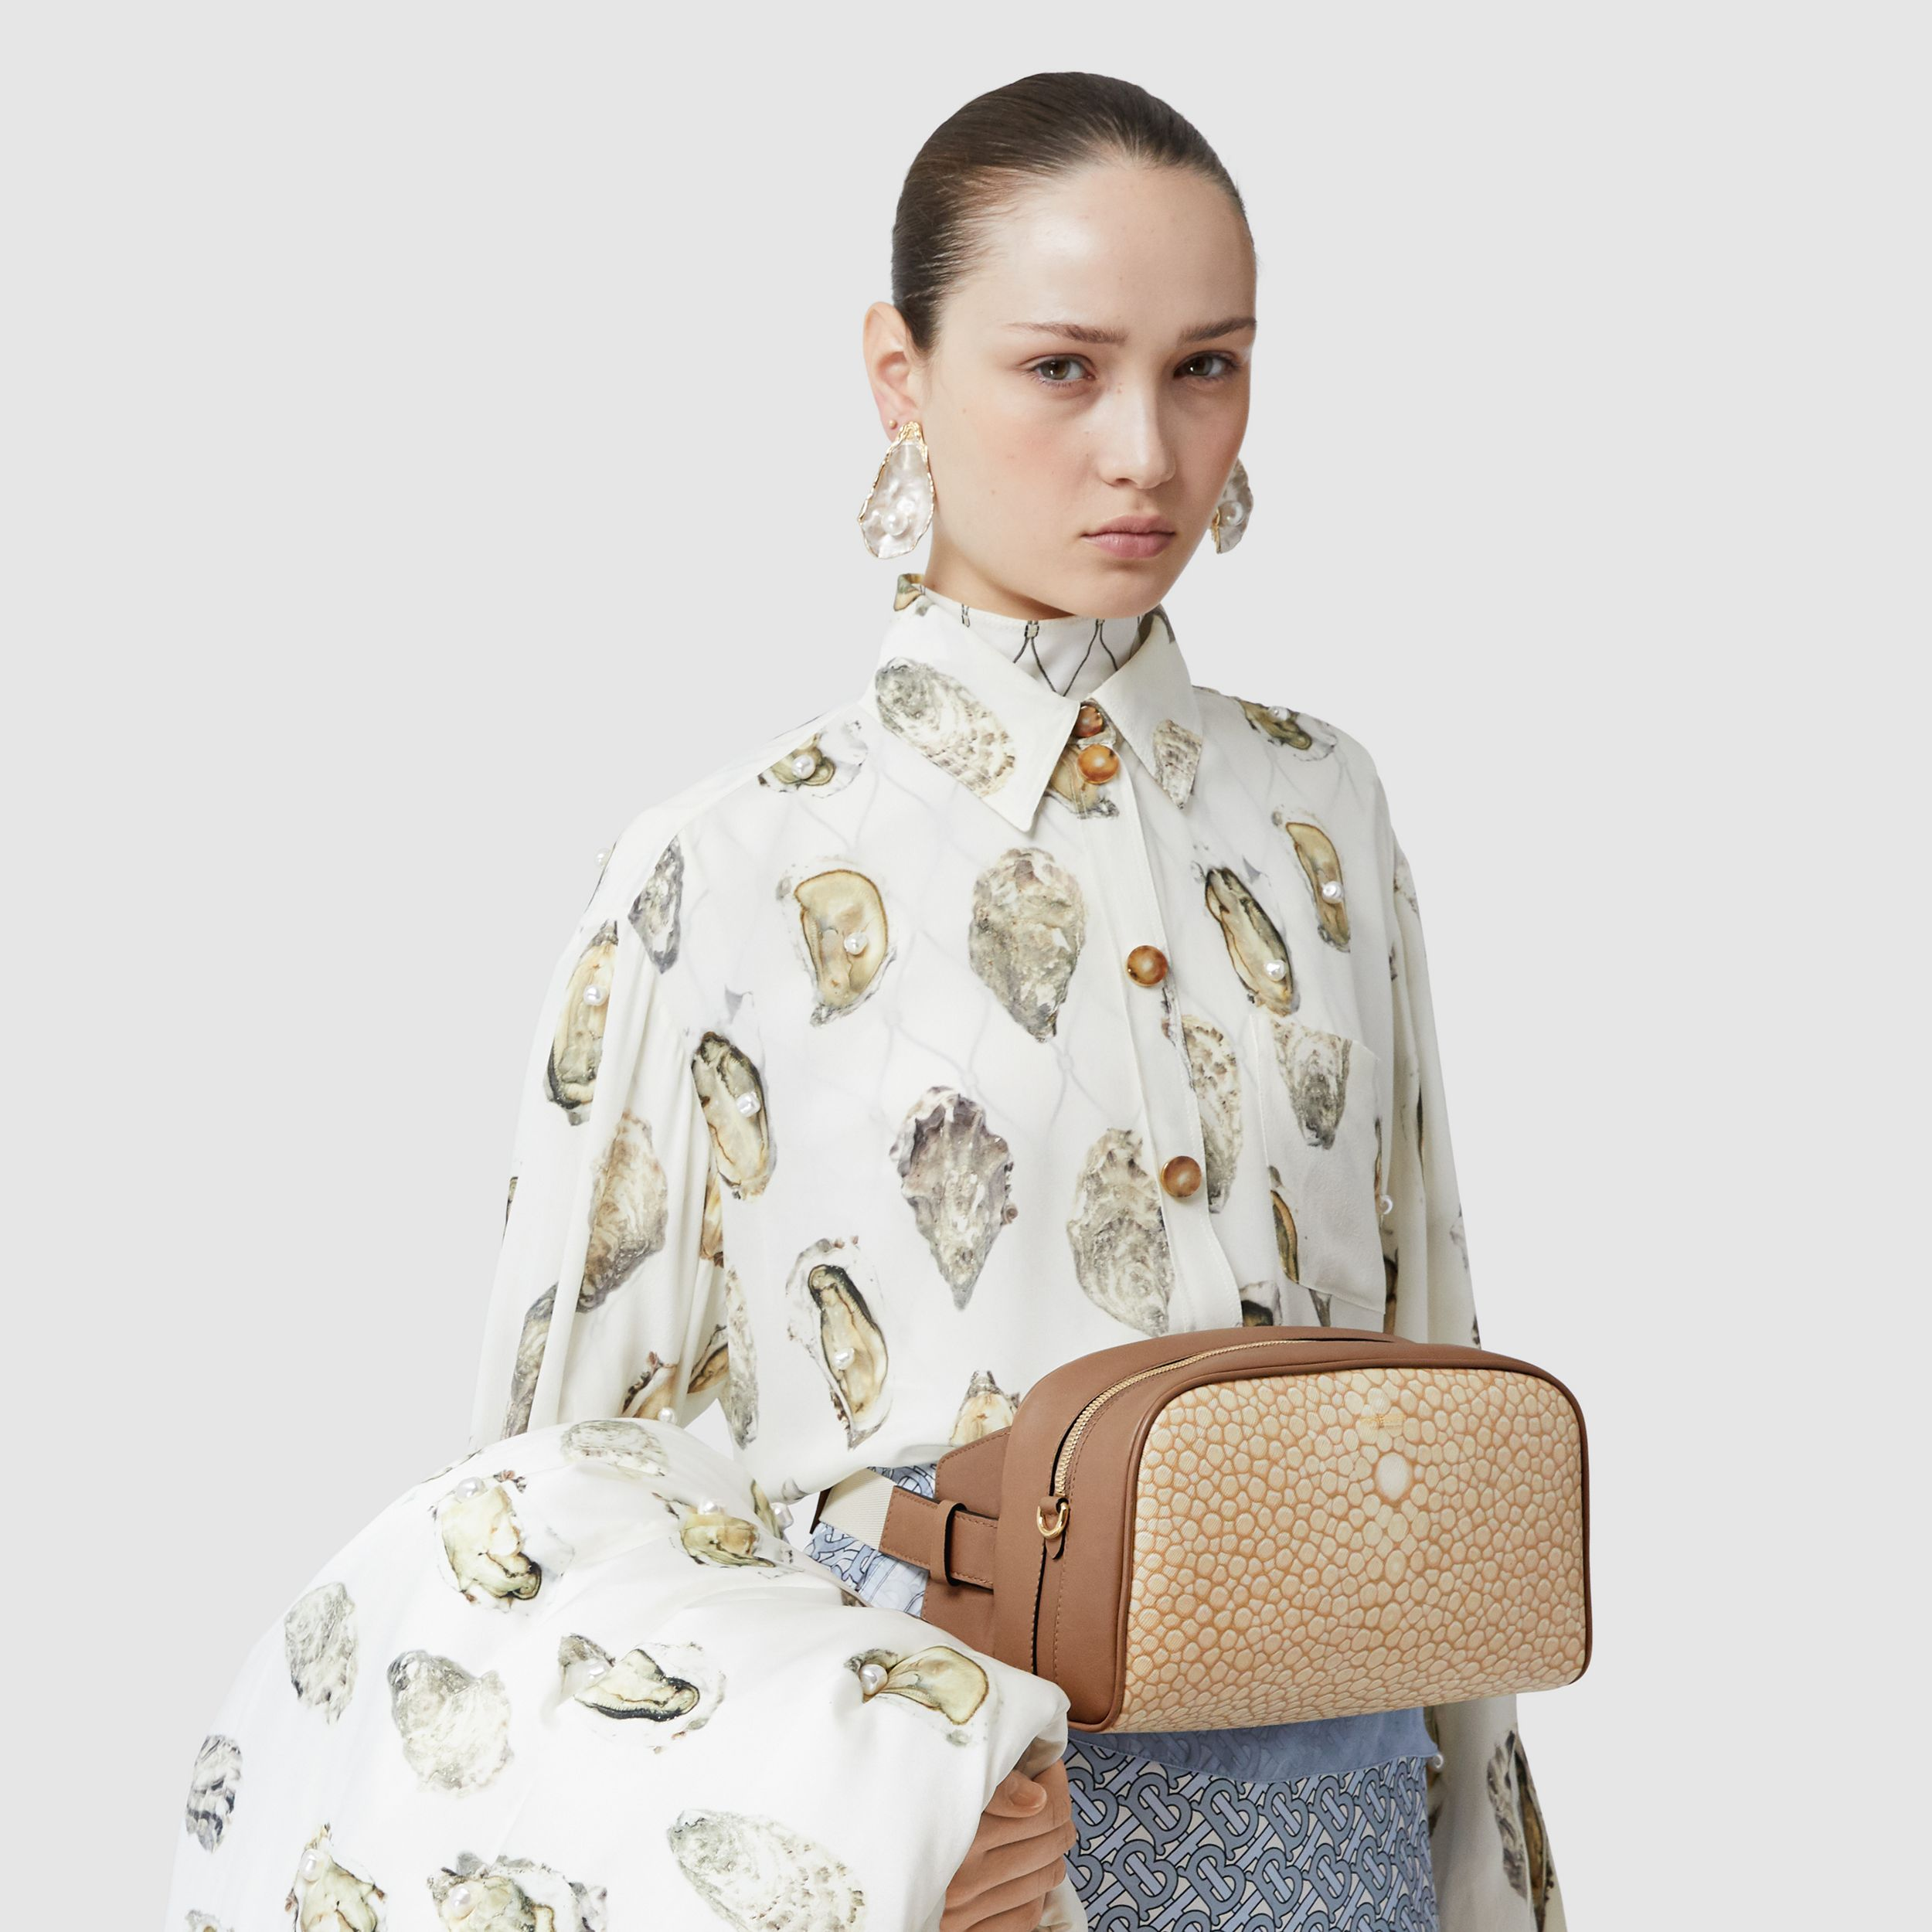 Fish-scale Print and Leather Cube Bum Bag in Light Sand - Women | Burberry - 3